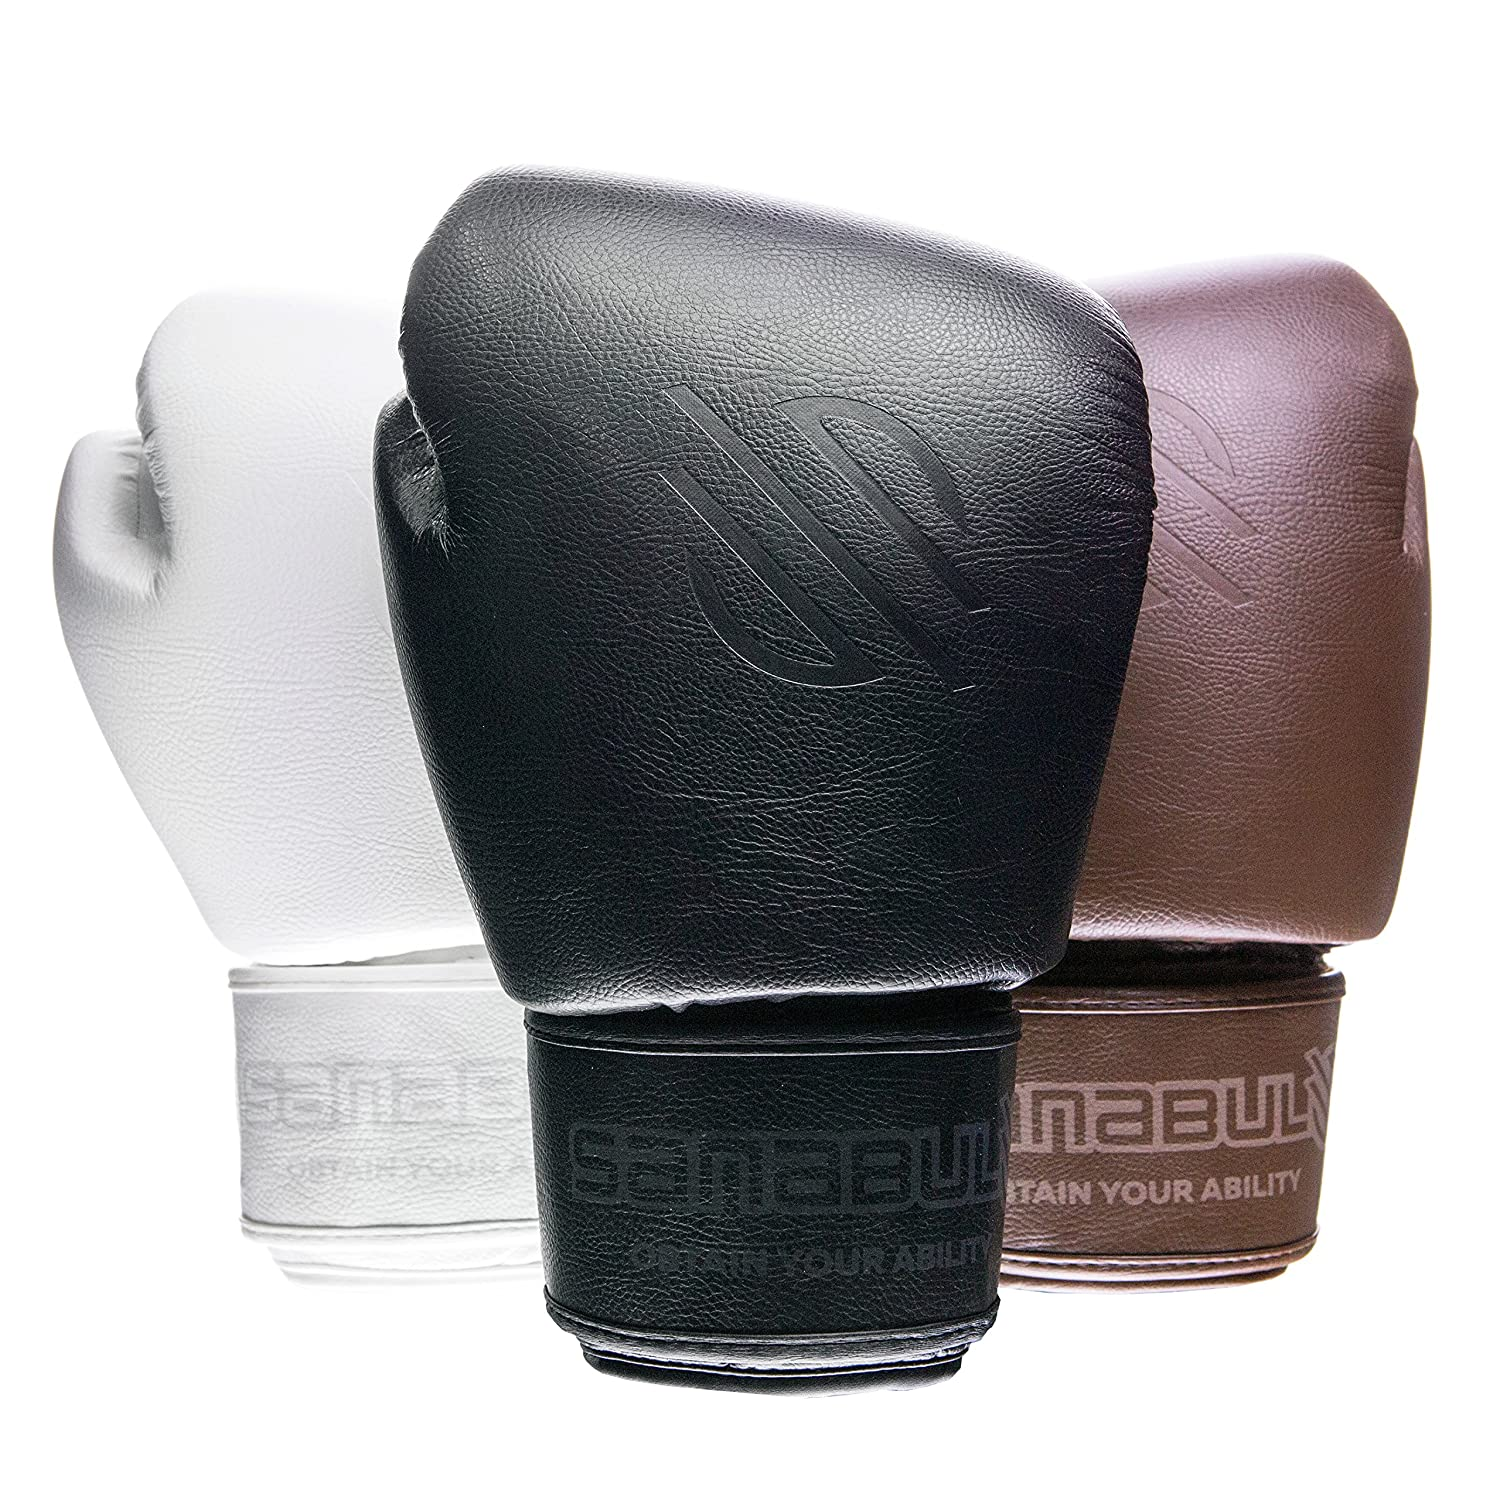 Top Muay Thai Gloves - Sanabul Battle Forged Thai Style Kickboxing Professional Gloves